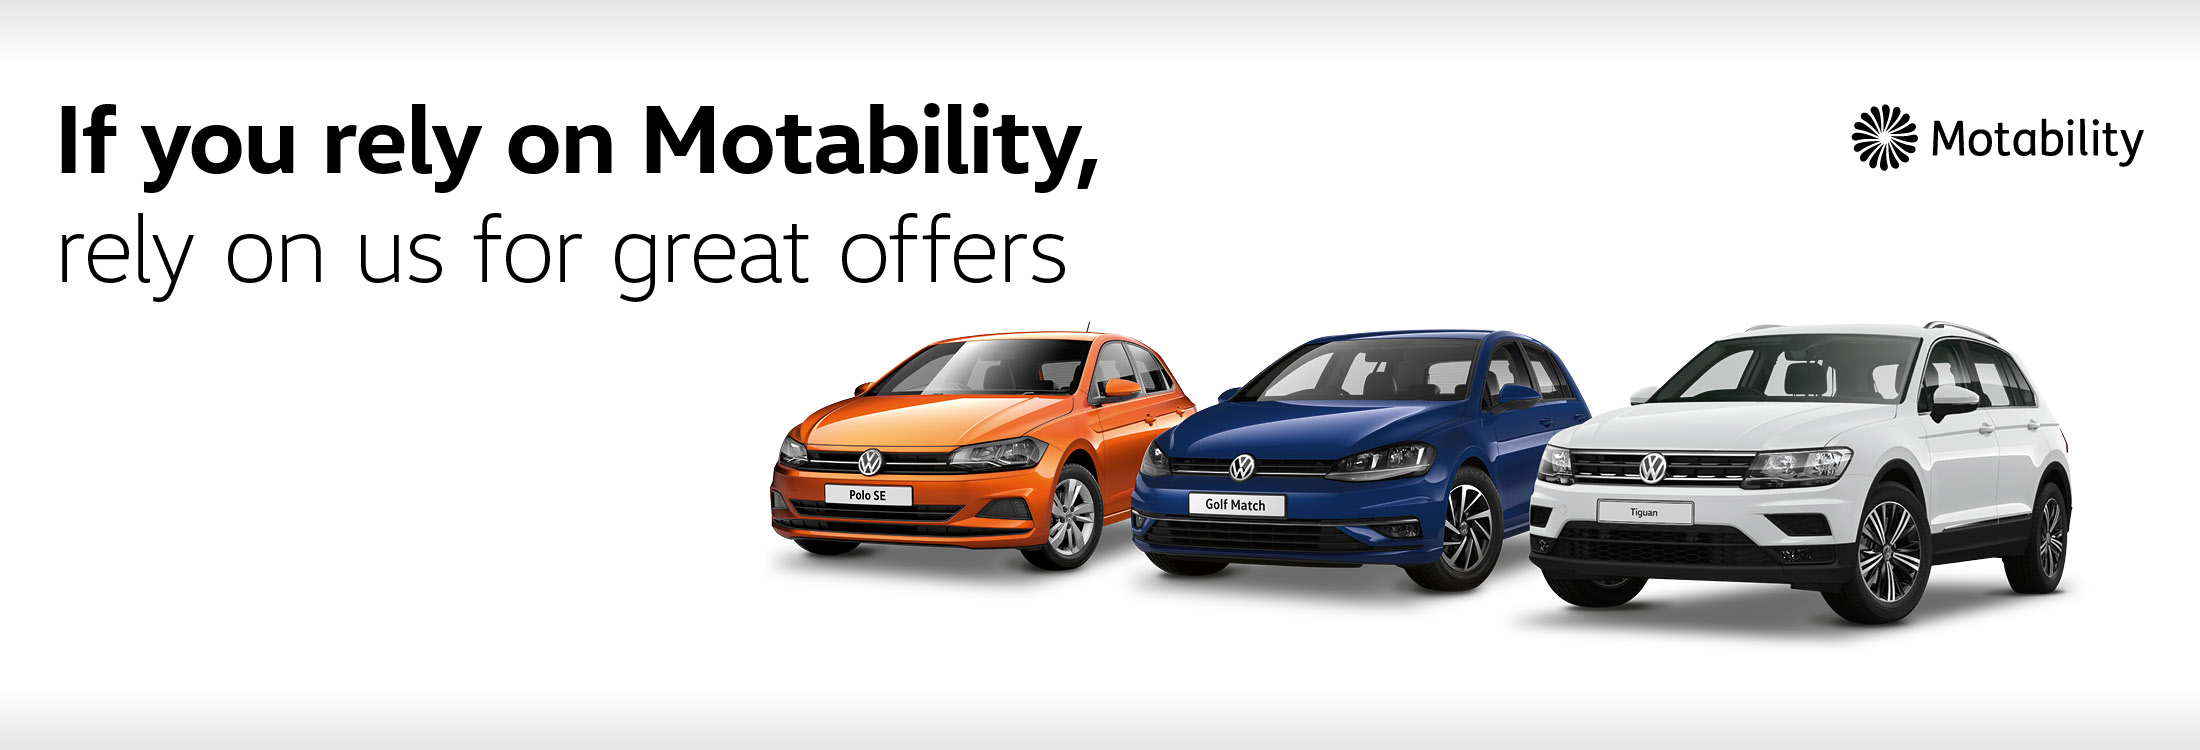 rely on us for motability